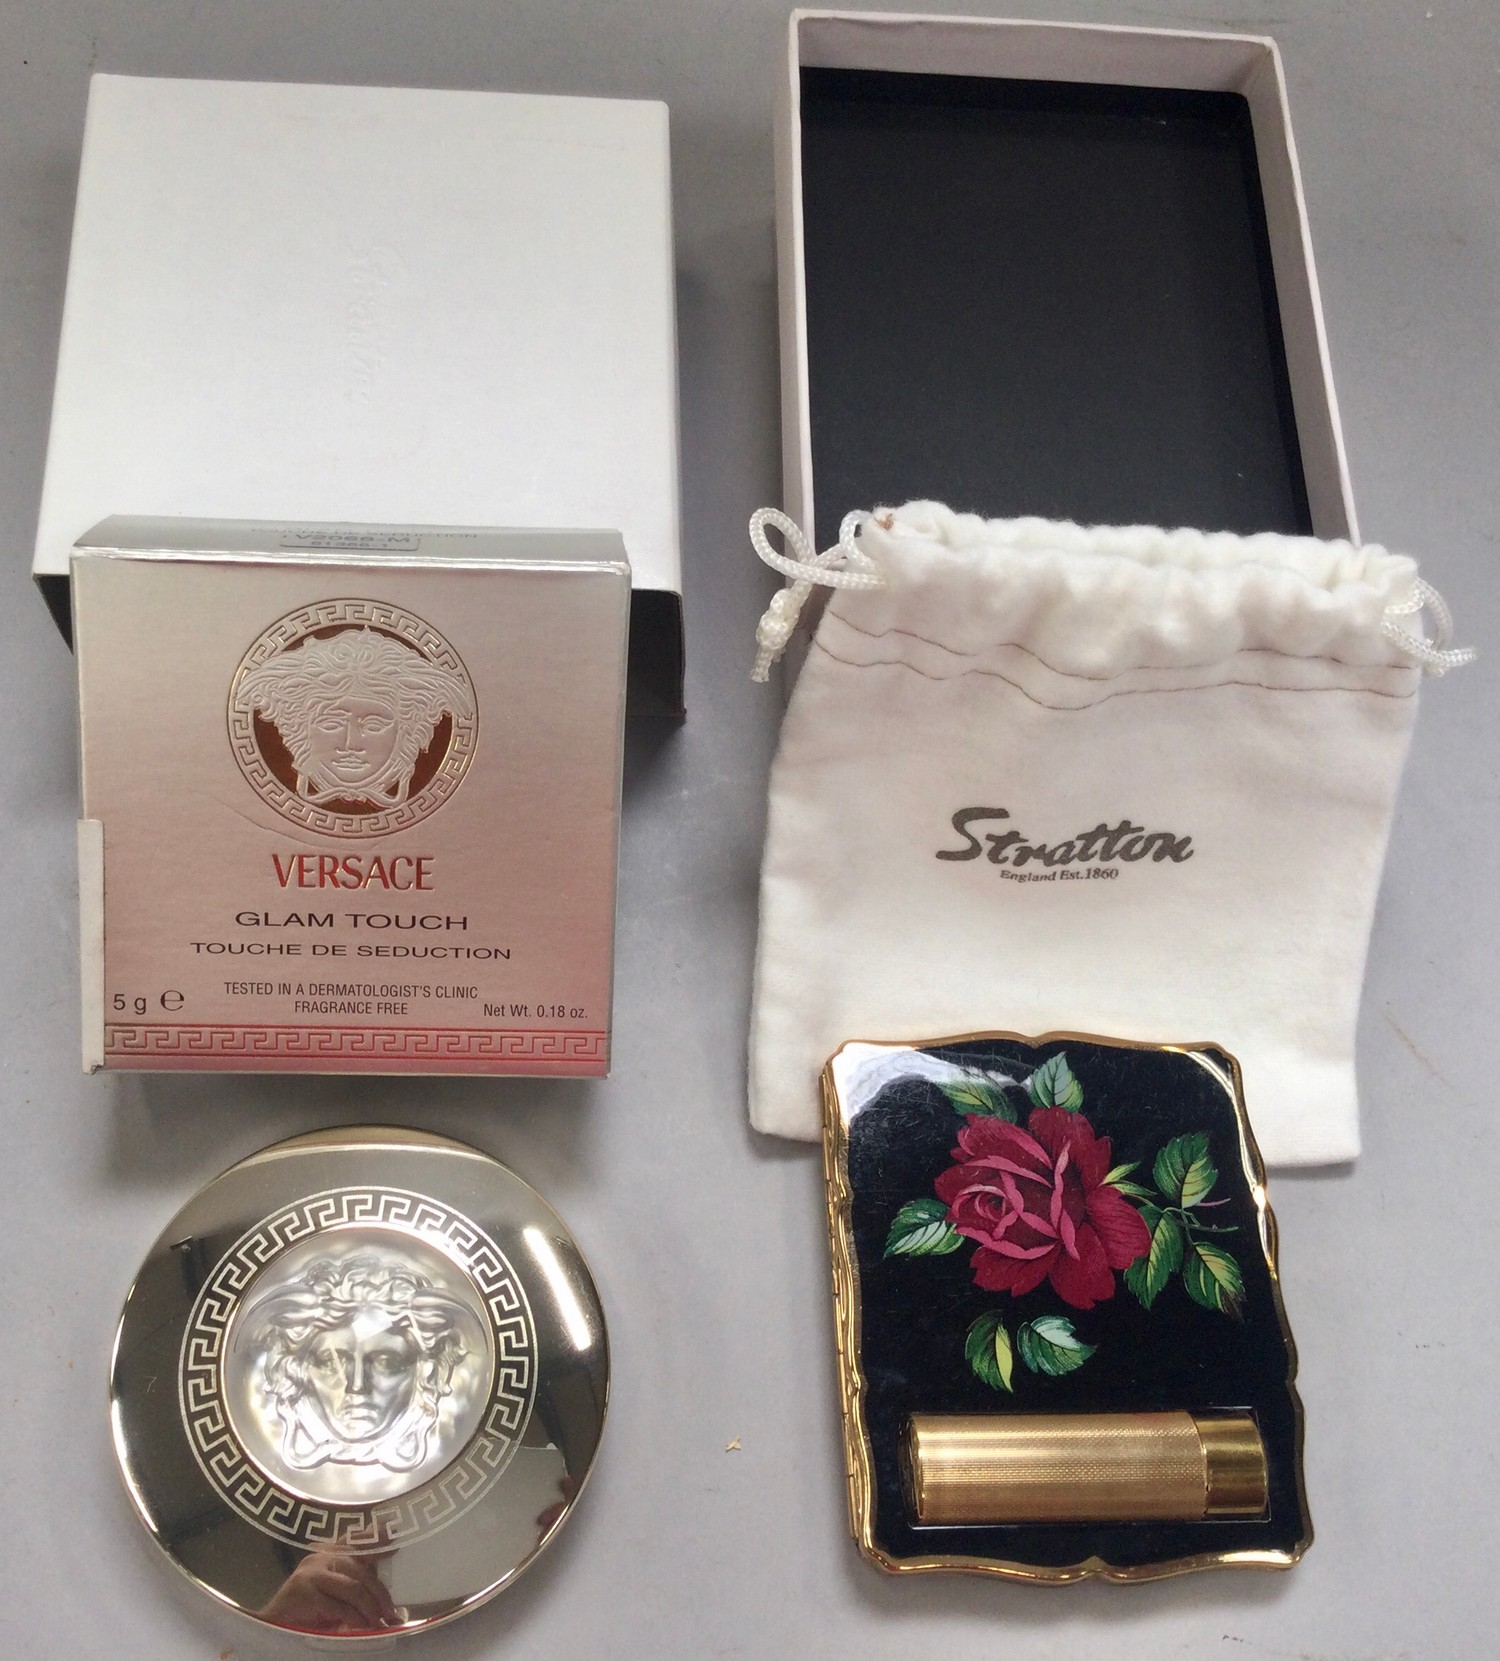 Stratton ladies compact with lipstick boxed with pouch together with Versace Glam Touch boxed